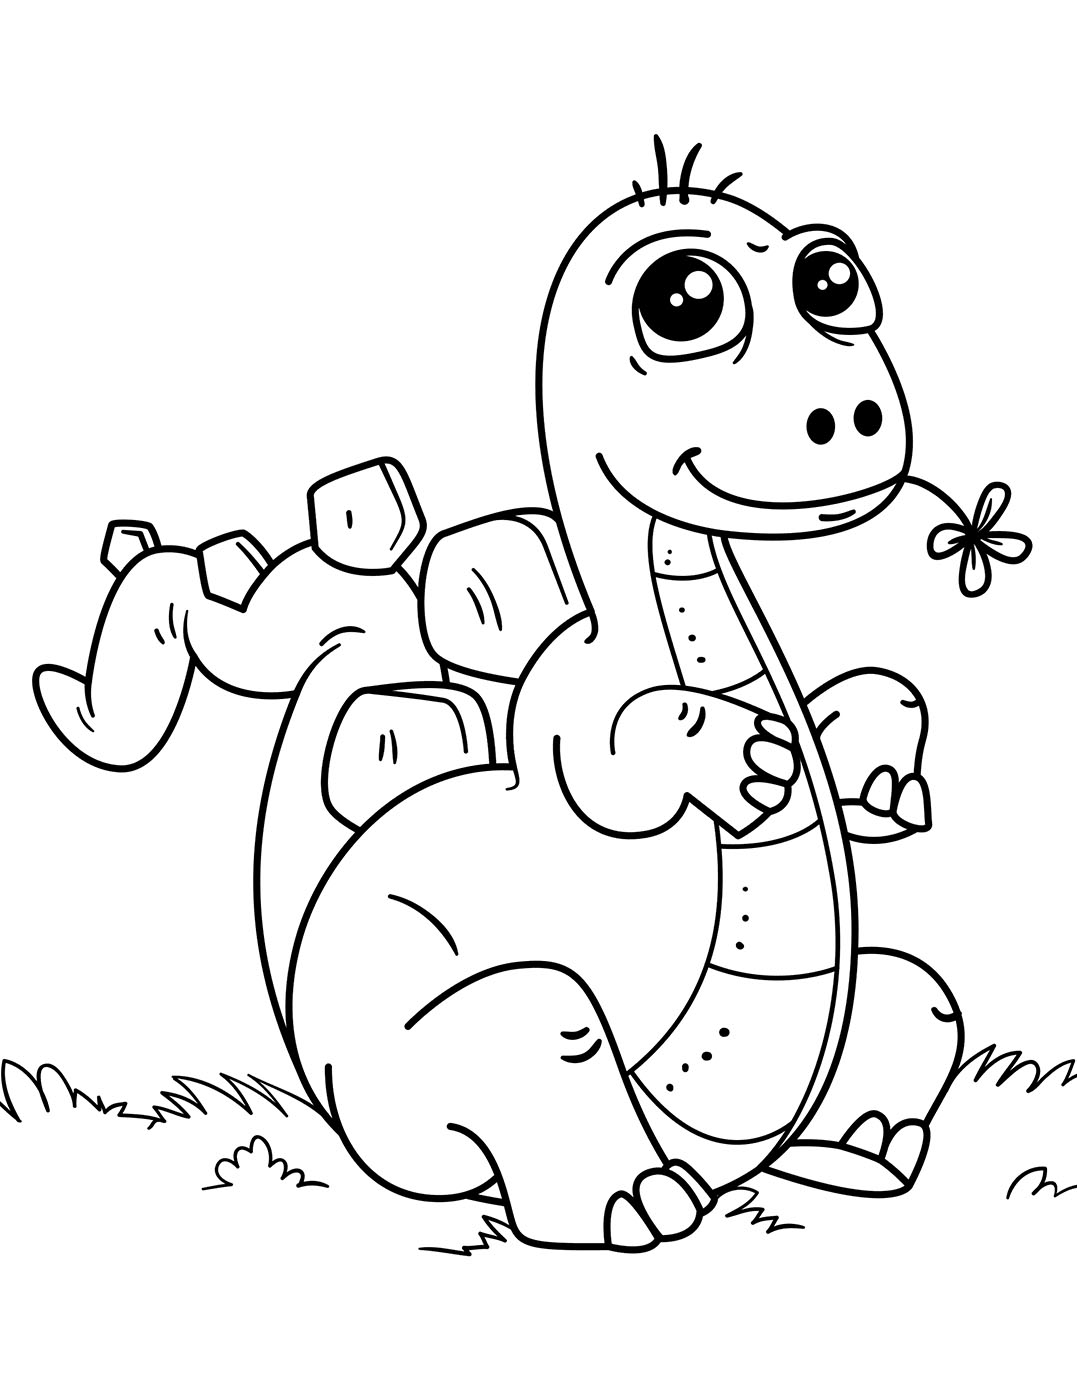 printable pictures of dinosaurs free printable dinosaur coloring pages for kids printable pictures of dinosaurs